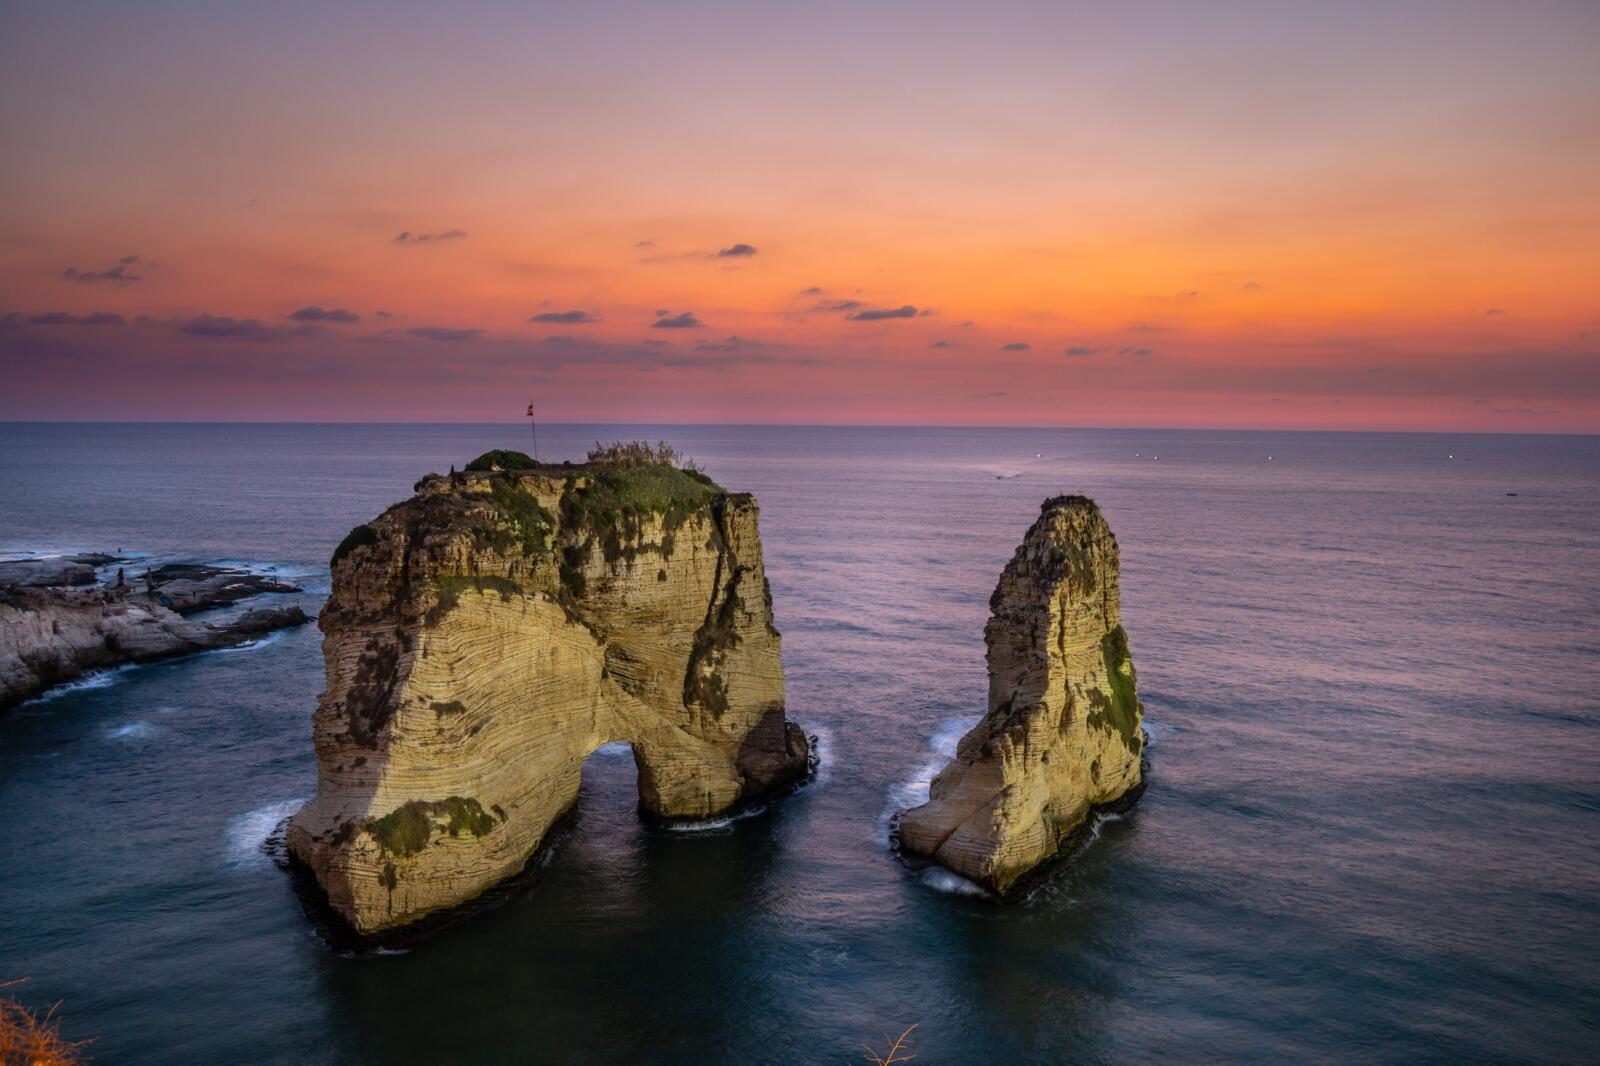 Pigeon Rocks in the Raouche neighbourhhood of downtown Beirut at sunset